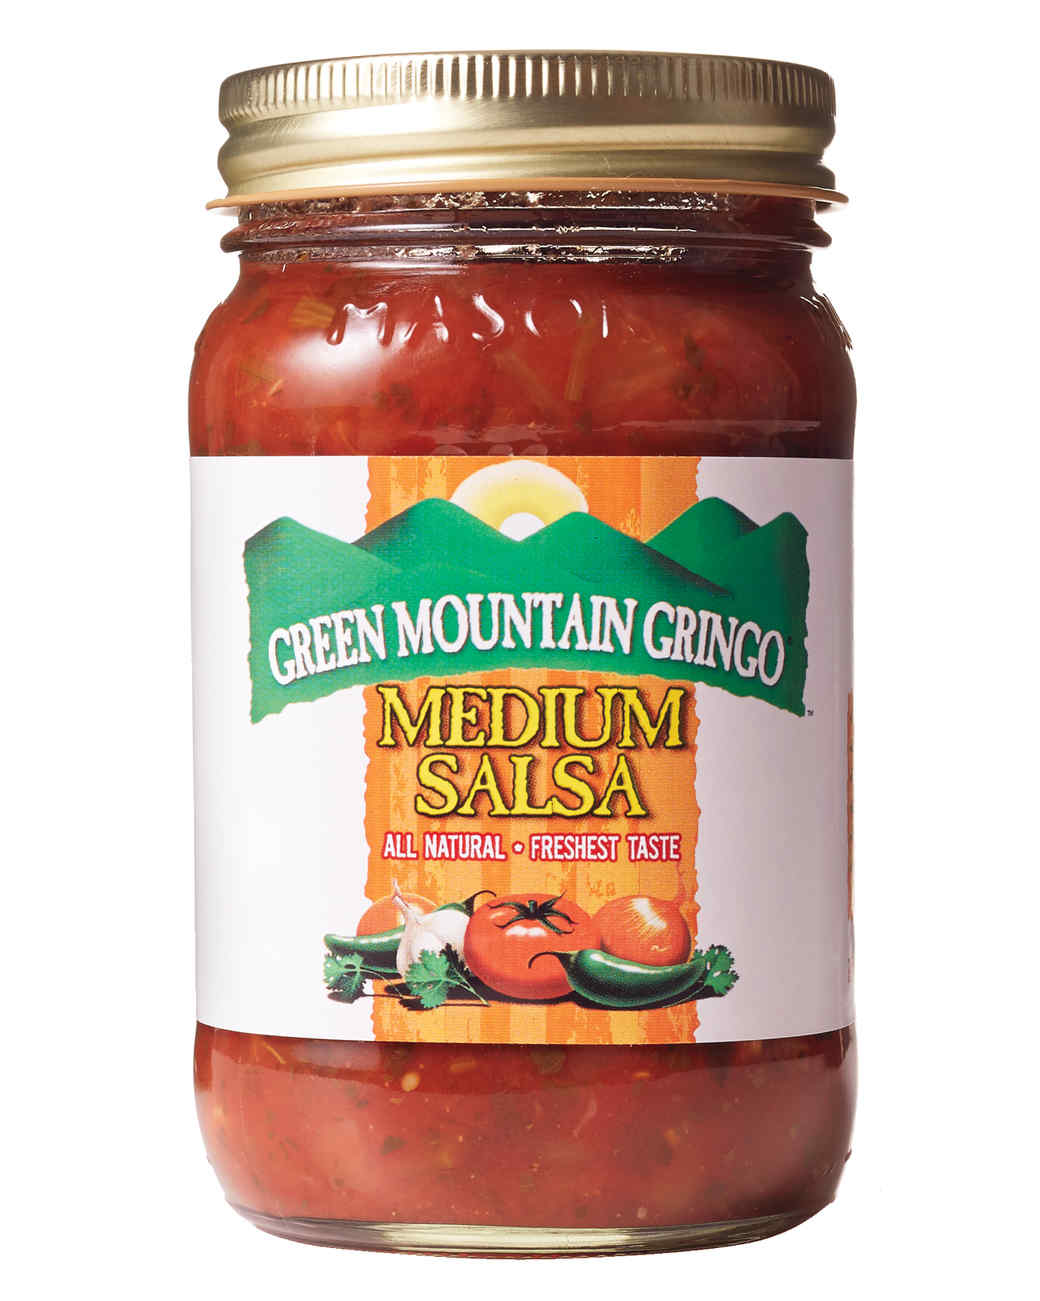 green-mountain-gringo-salsa-029-d112221.jpg